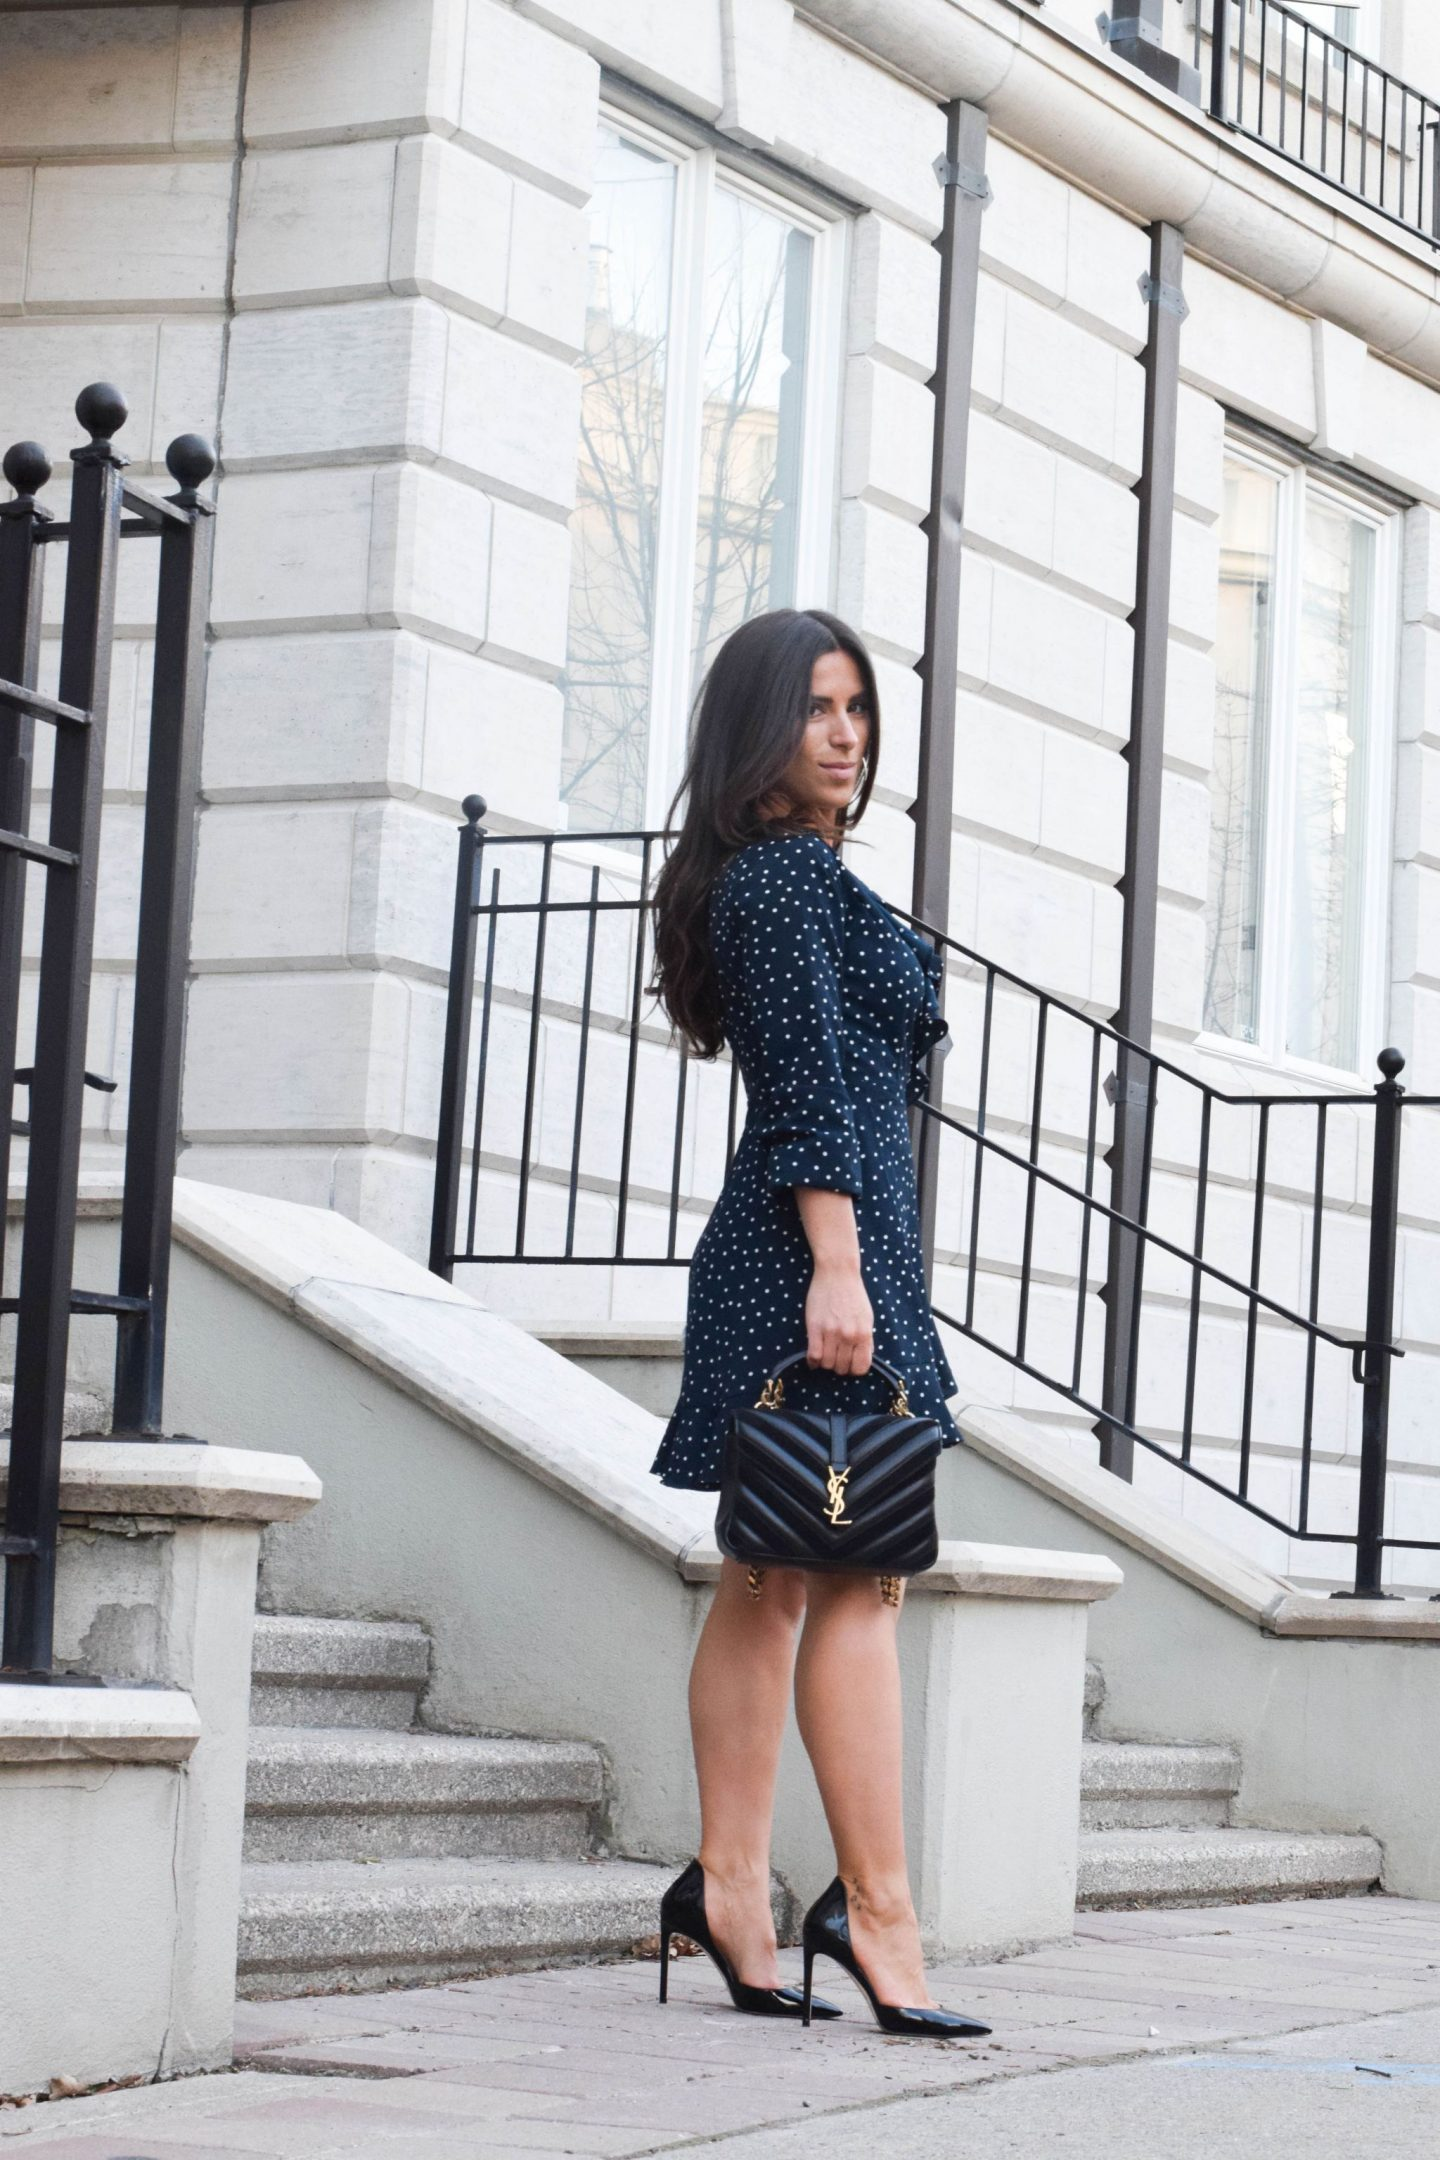 Style: It's Summer Dress Season & This is a Summer Staple You Need